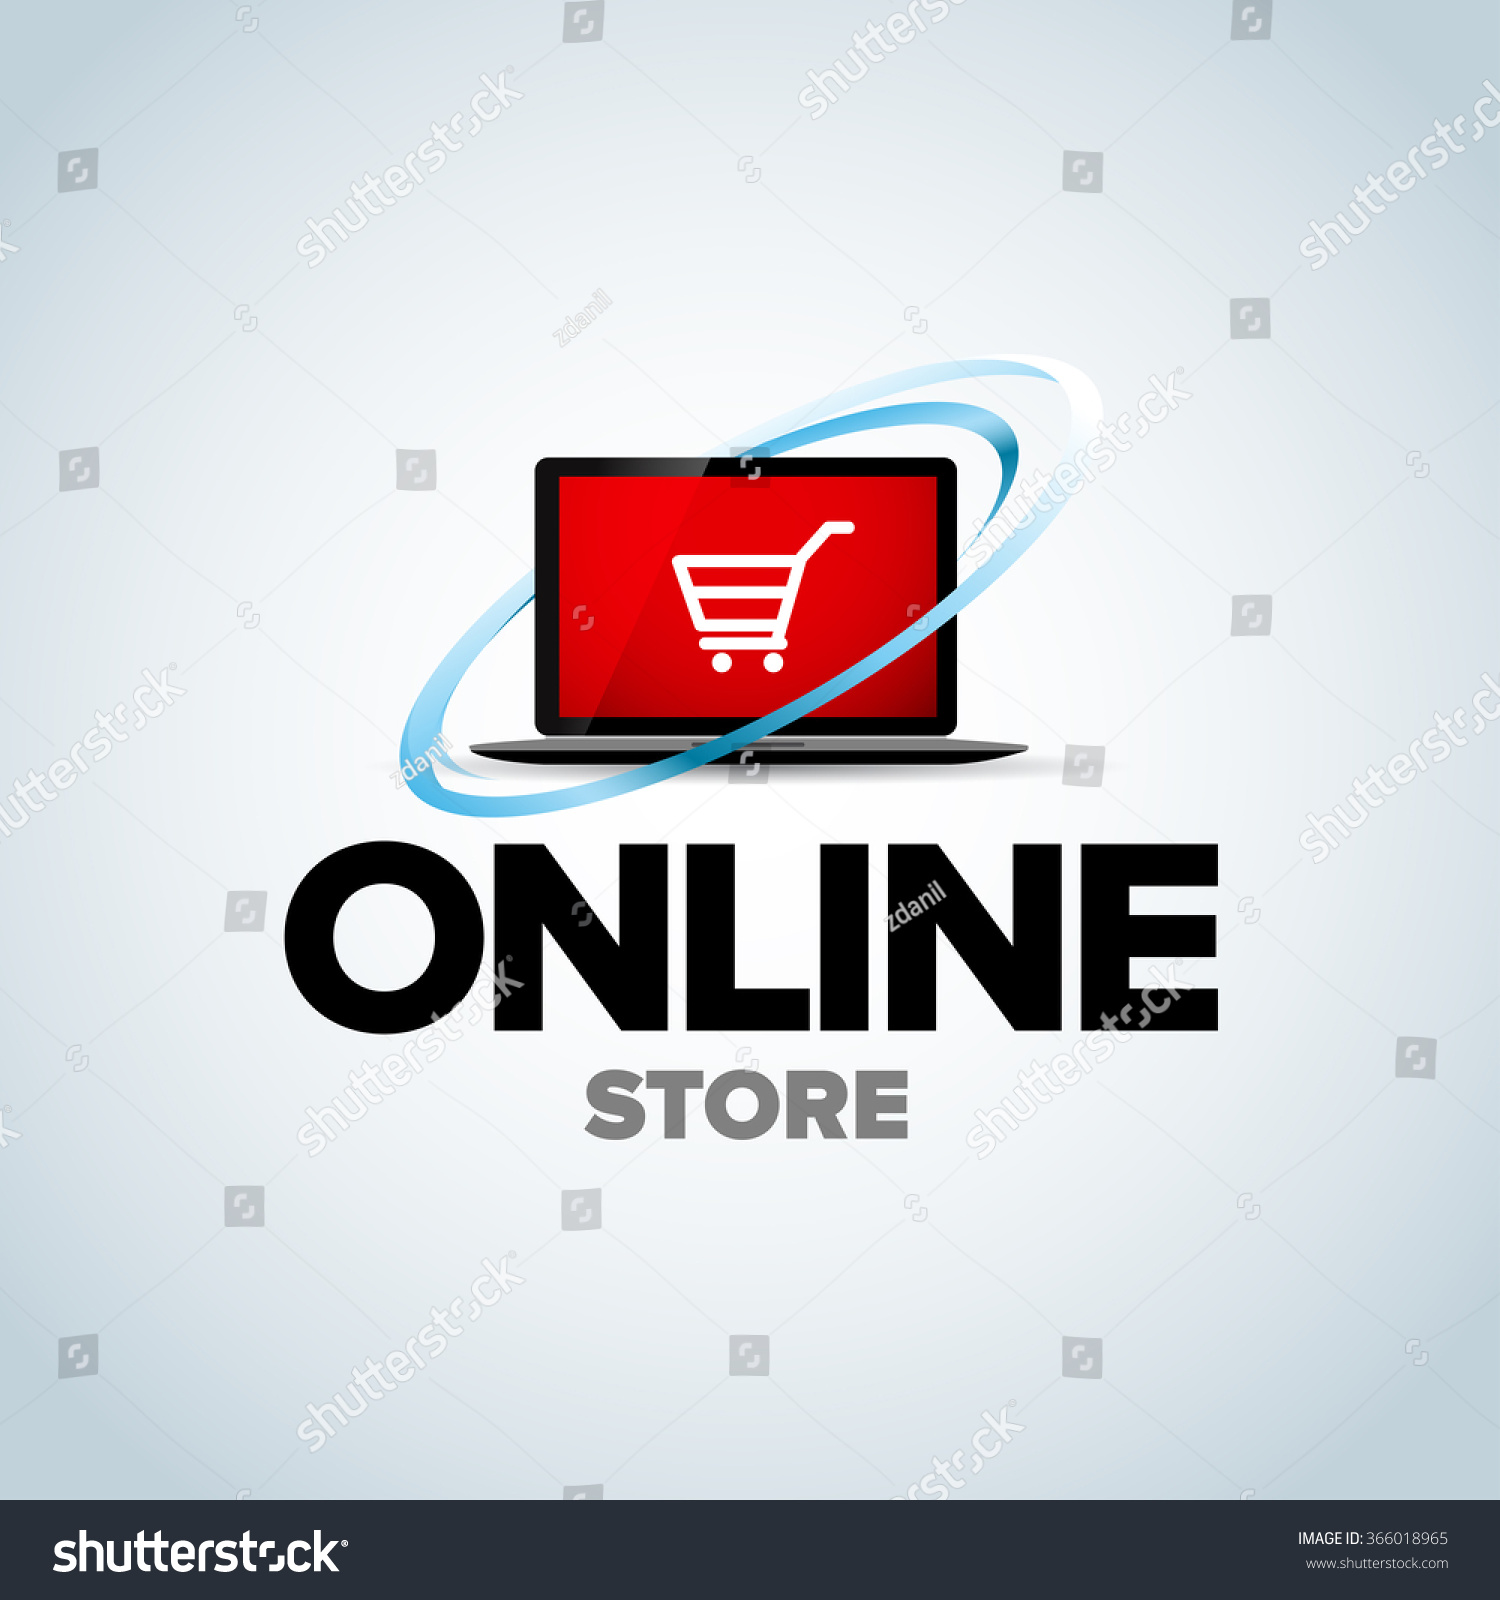 Online shopping in Nepal the best thing in internet today which more and more people query today to perform action in their daily life for purchasing different stuffs for daily life. We shop in Nepal are here for all the support regarding the products that we offer to all the people.